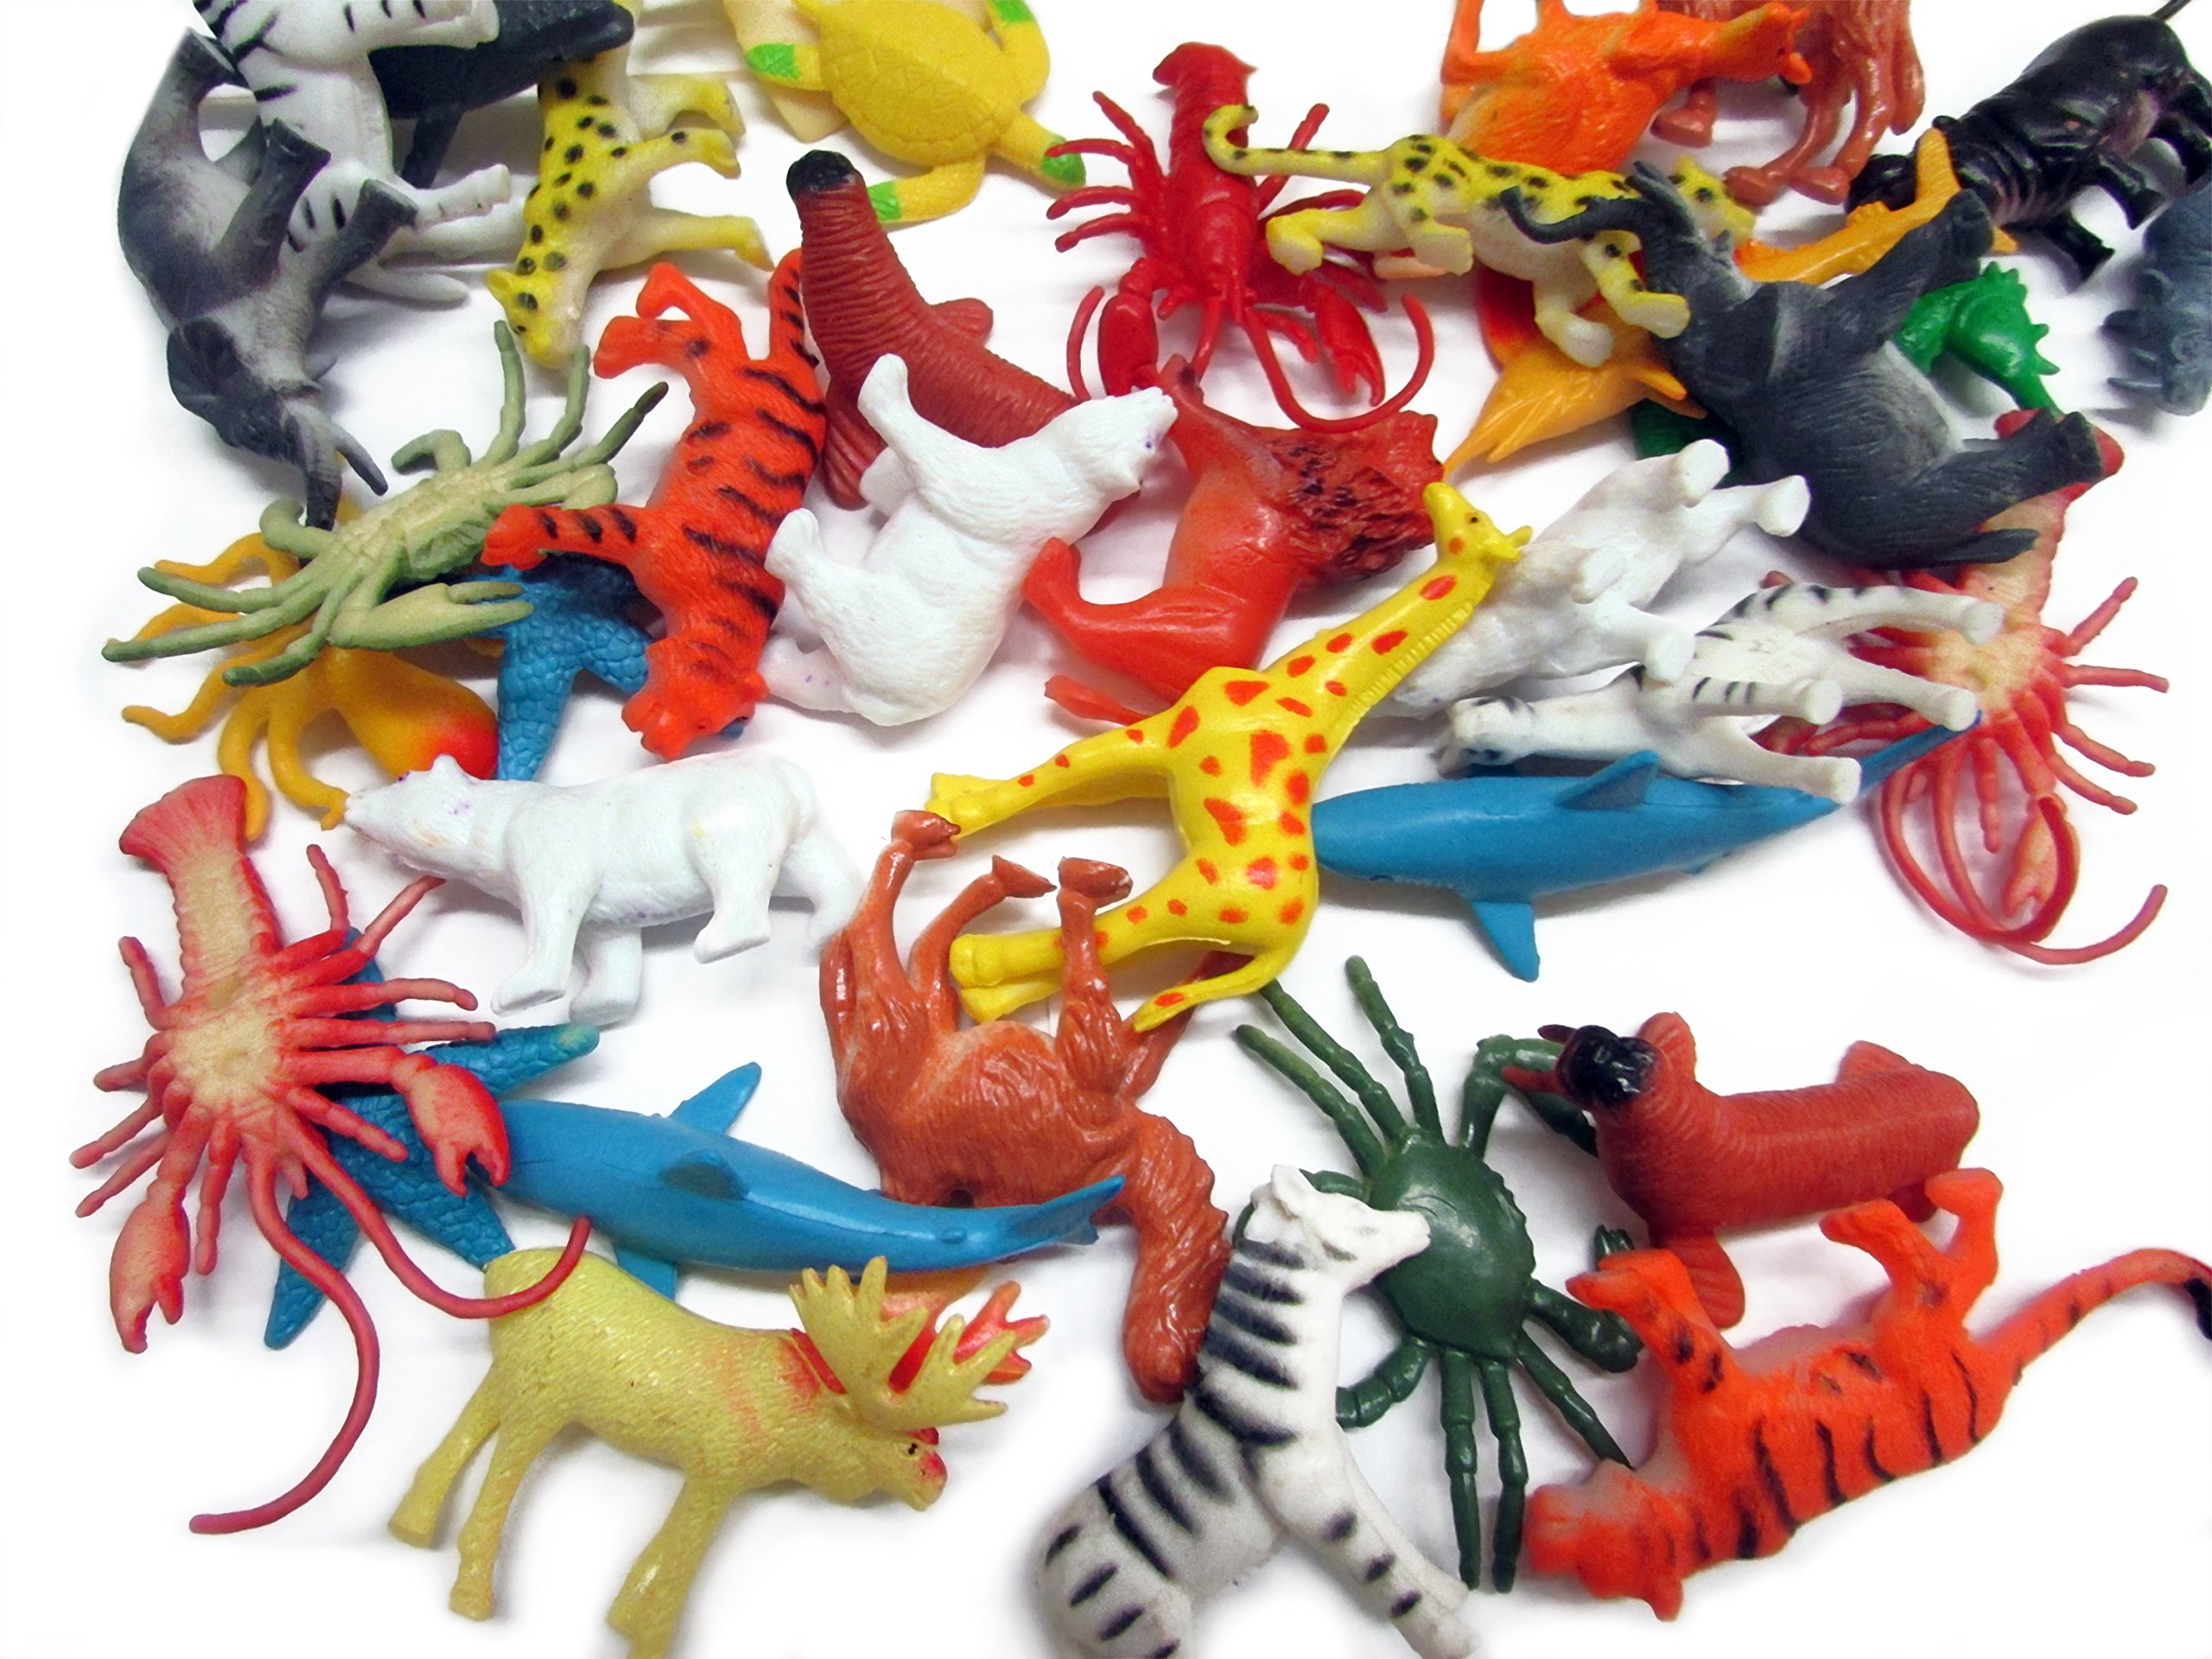 dazzling toys 90 Pieces Mini Ocean Sea Plastic Animals | Mega Bulk Pack Of Under the Sea and Jungle Life Animals | Great for Bath time, Caketoppers, Party Favor